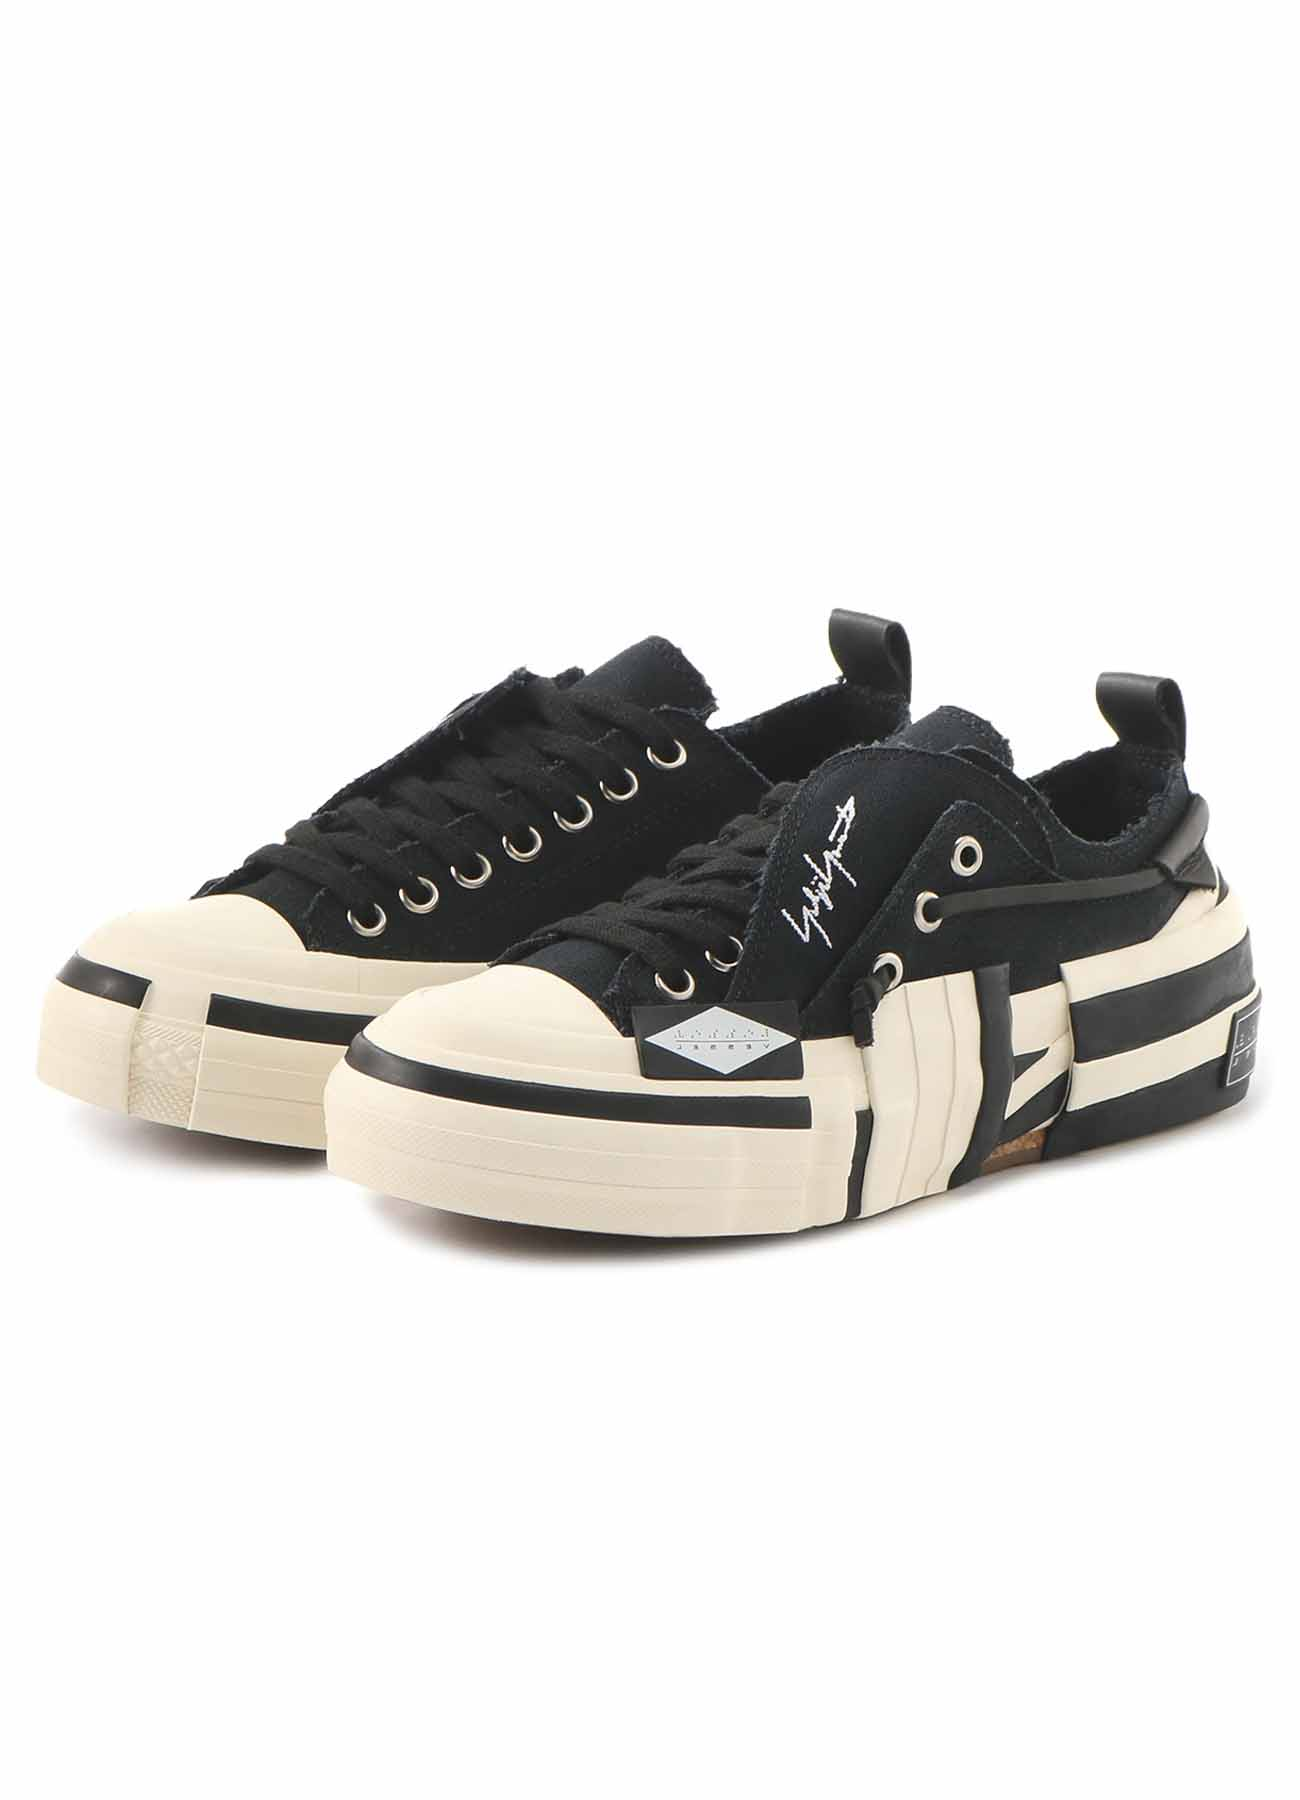 C/CANVAS BK LAYERED LOW TOP SNEAKERS